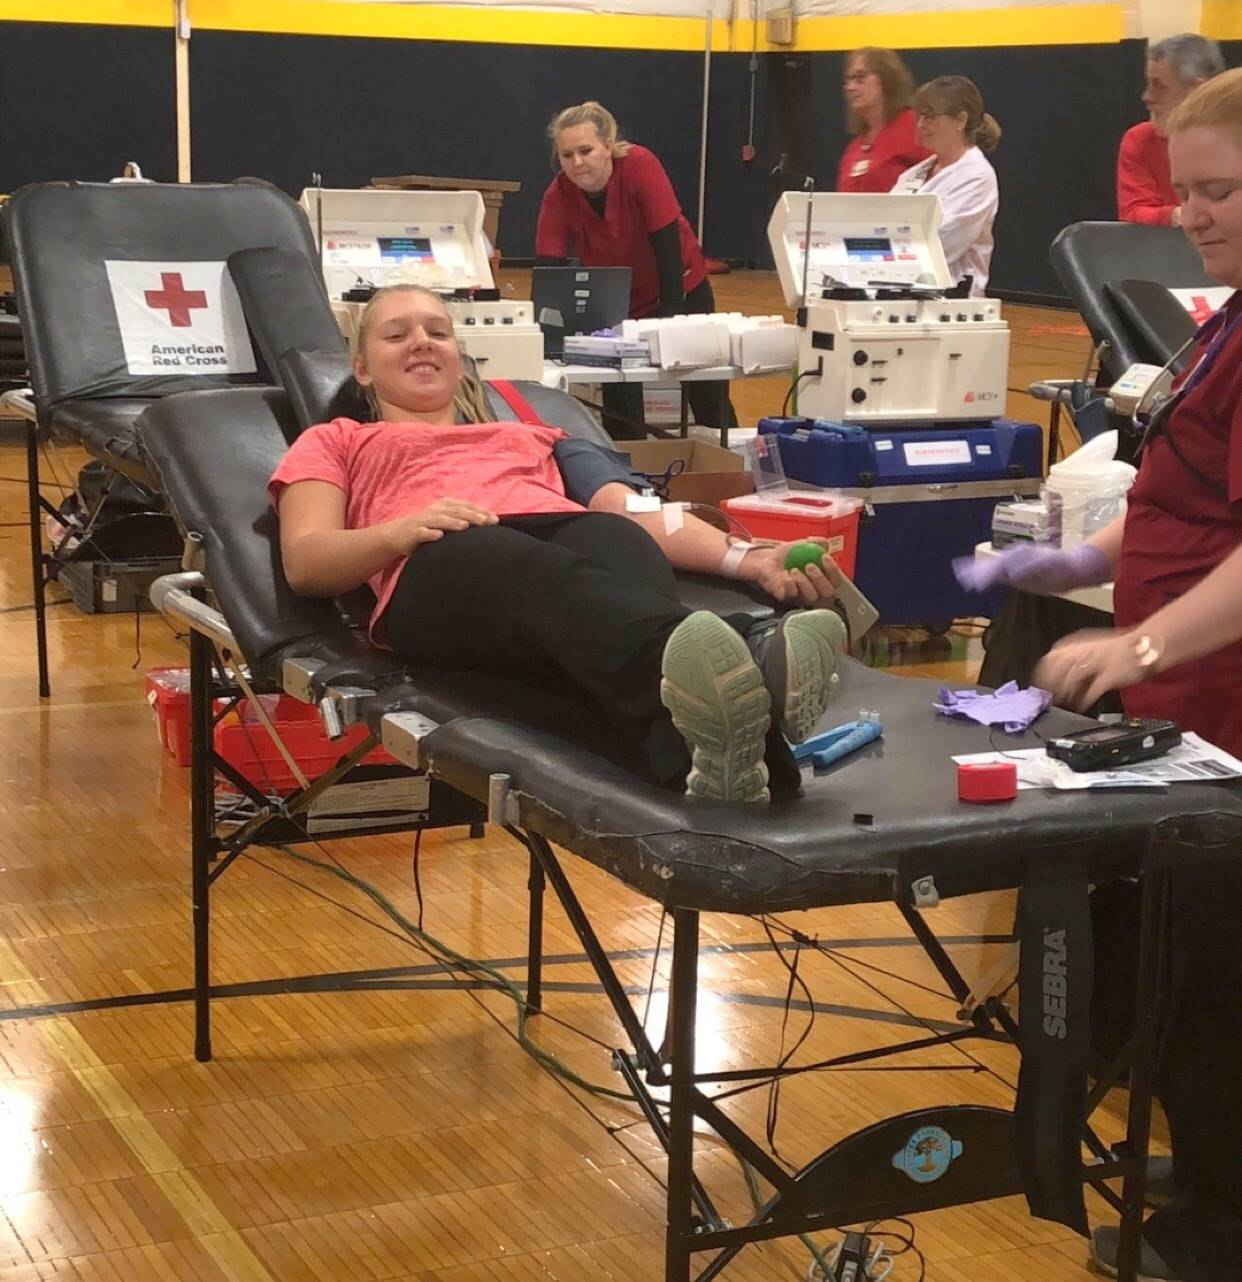 Student gives blood in annual blood drive